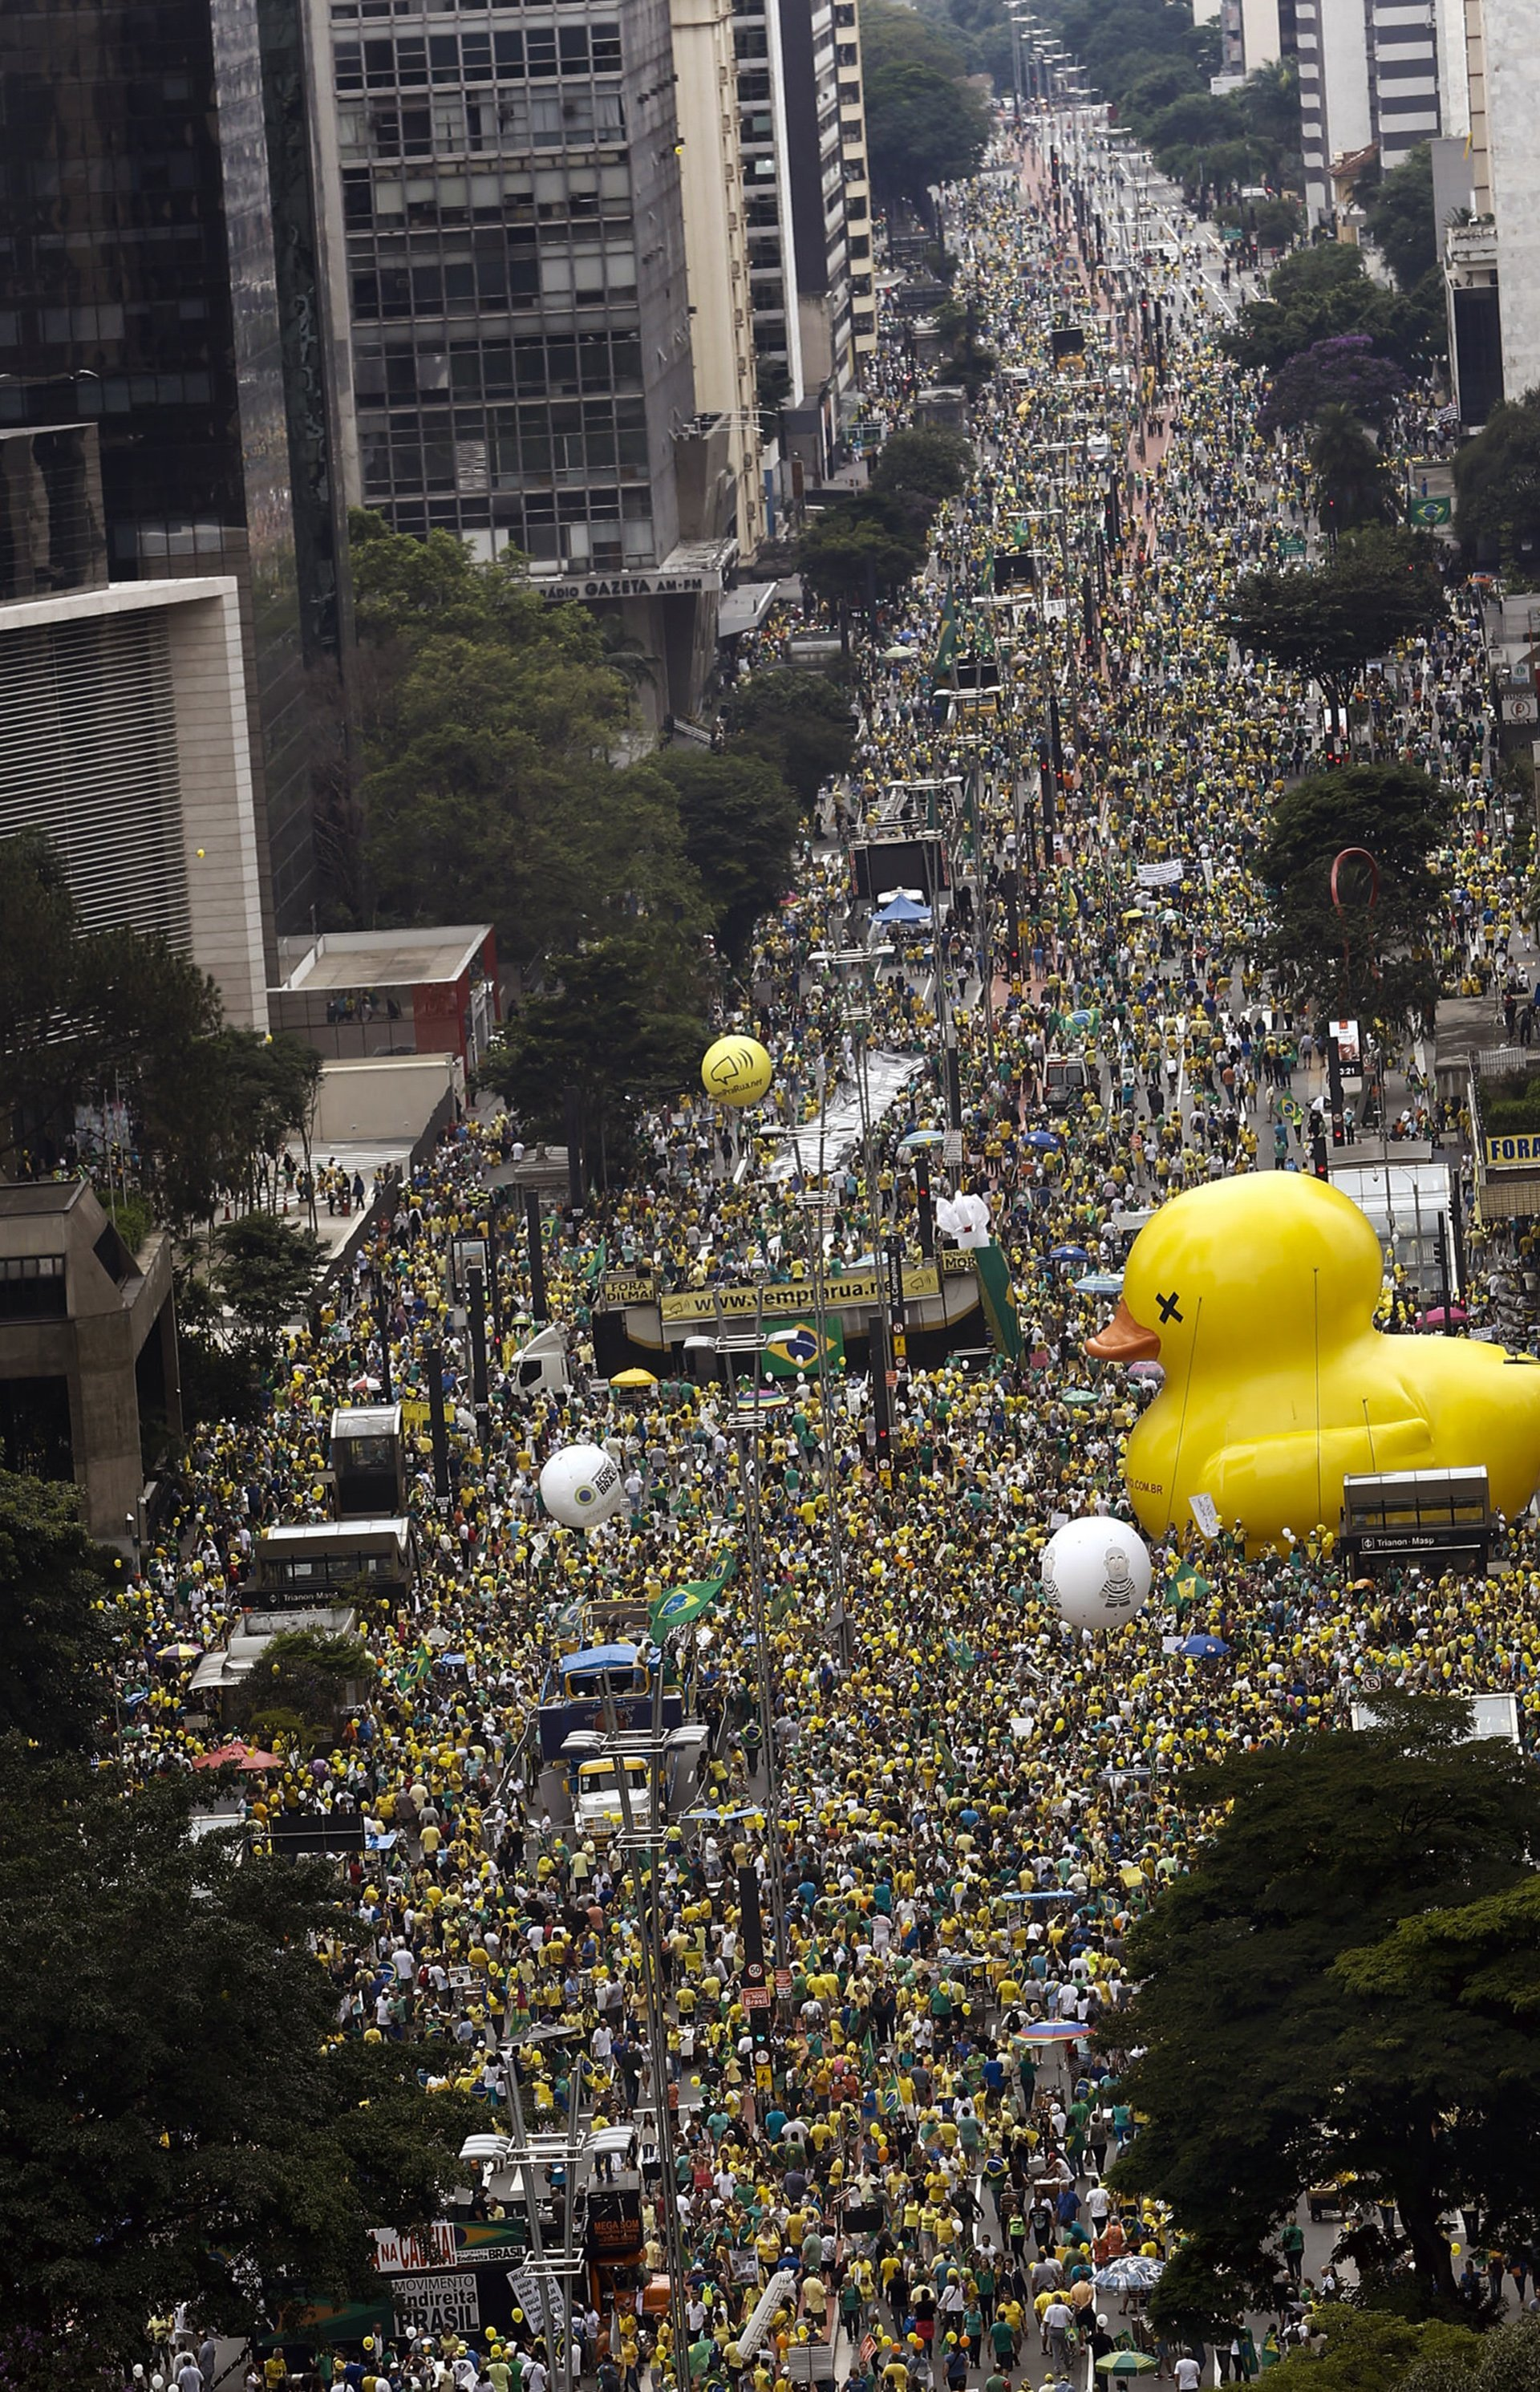 marcha brasil contra lula y dilma rousseff (13)